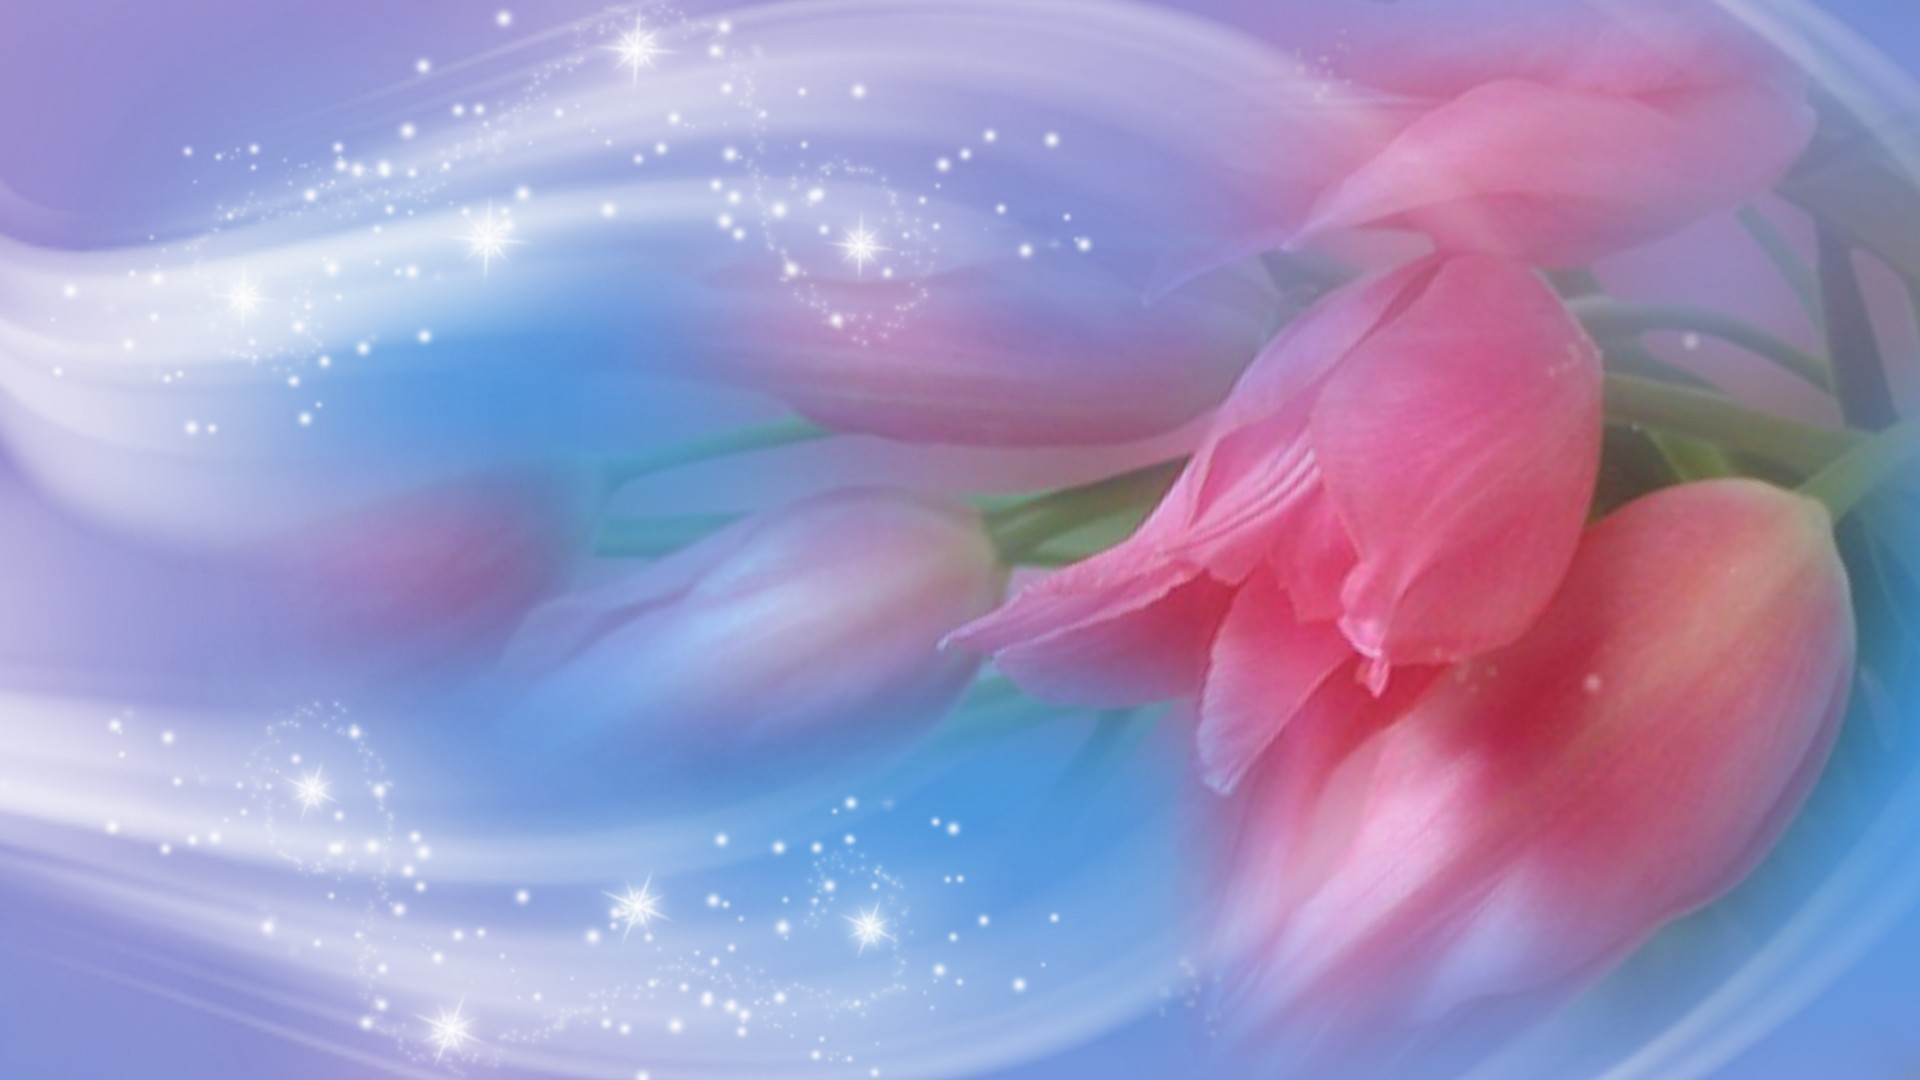 Flowers – Pink Romantic Flower Cute Pretty Blue Wallpapers High Resolution  for HD 16:9